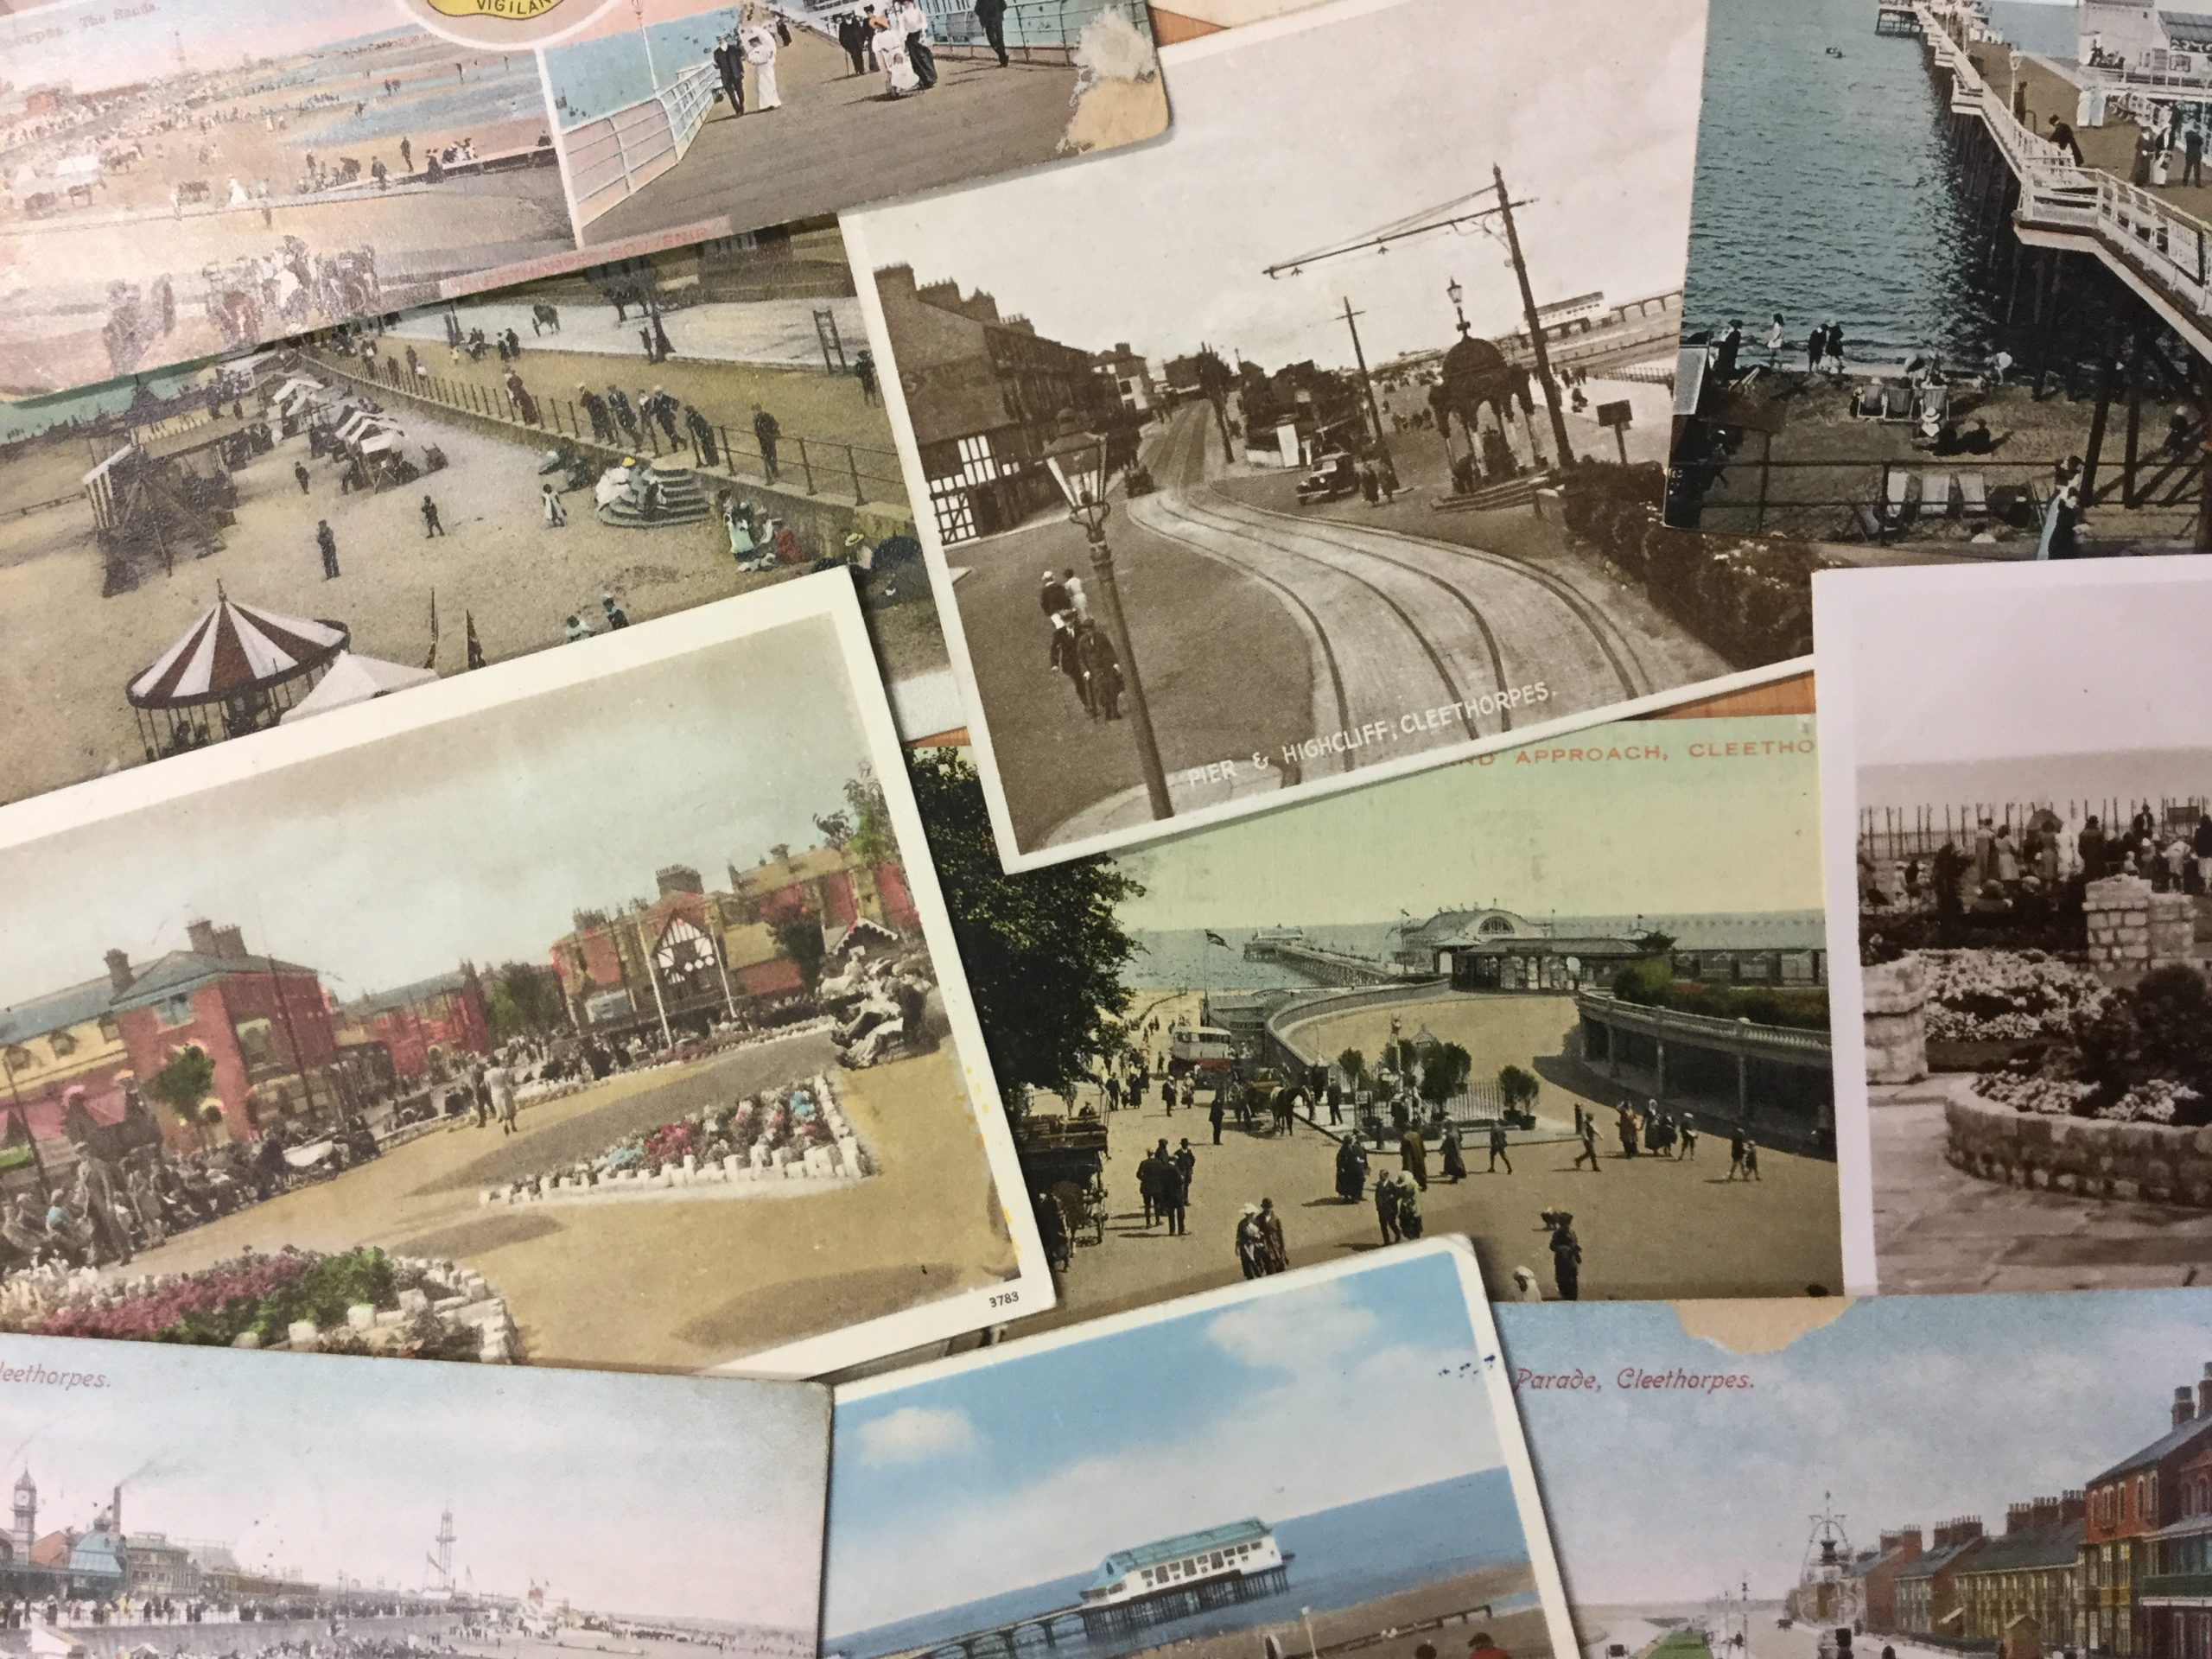 The project focused on the history of local seaside holidays from Victorian times to the present day.